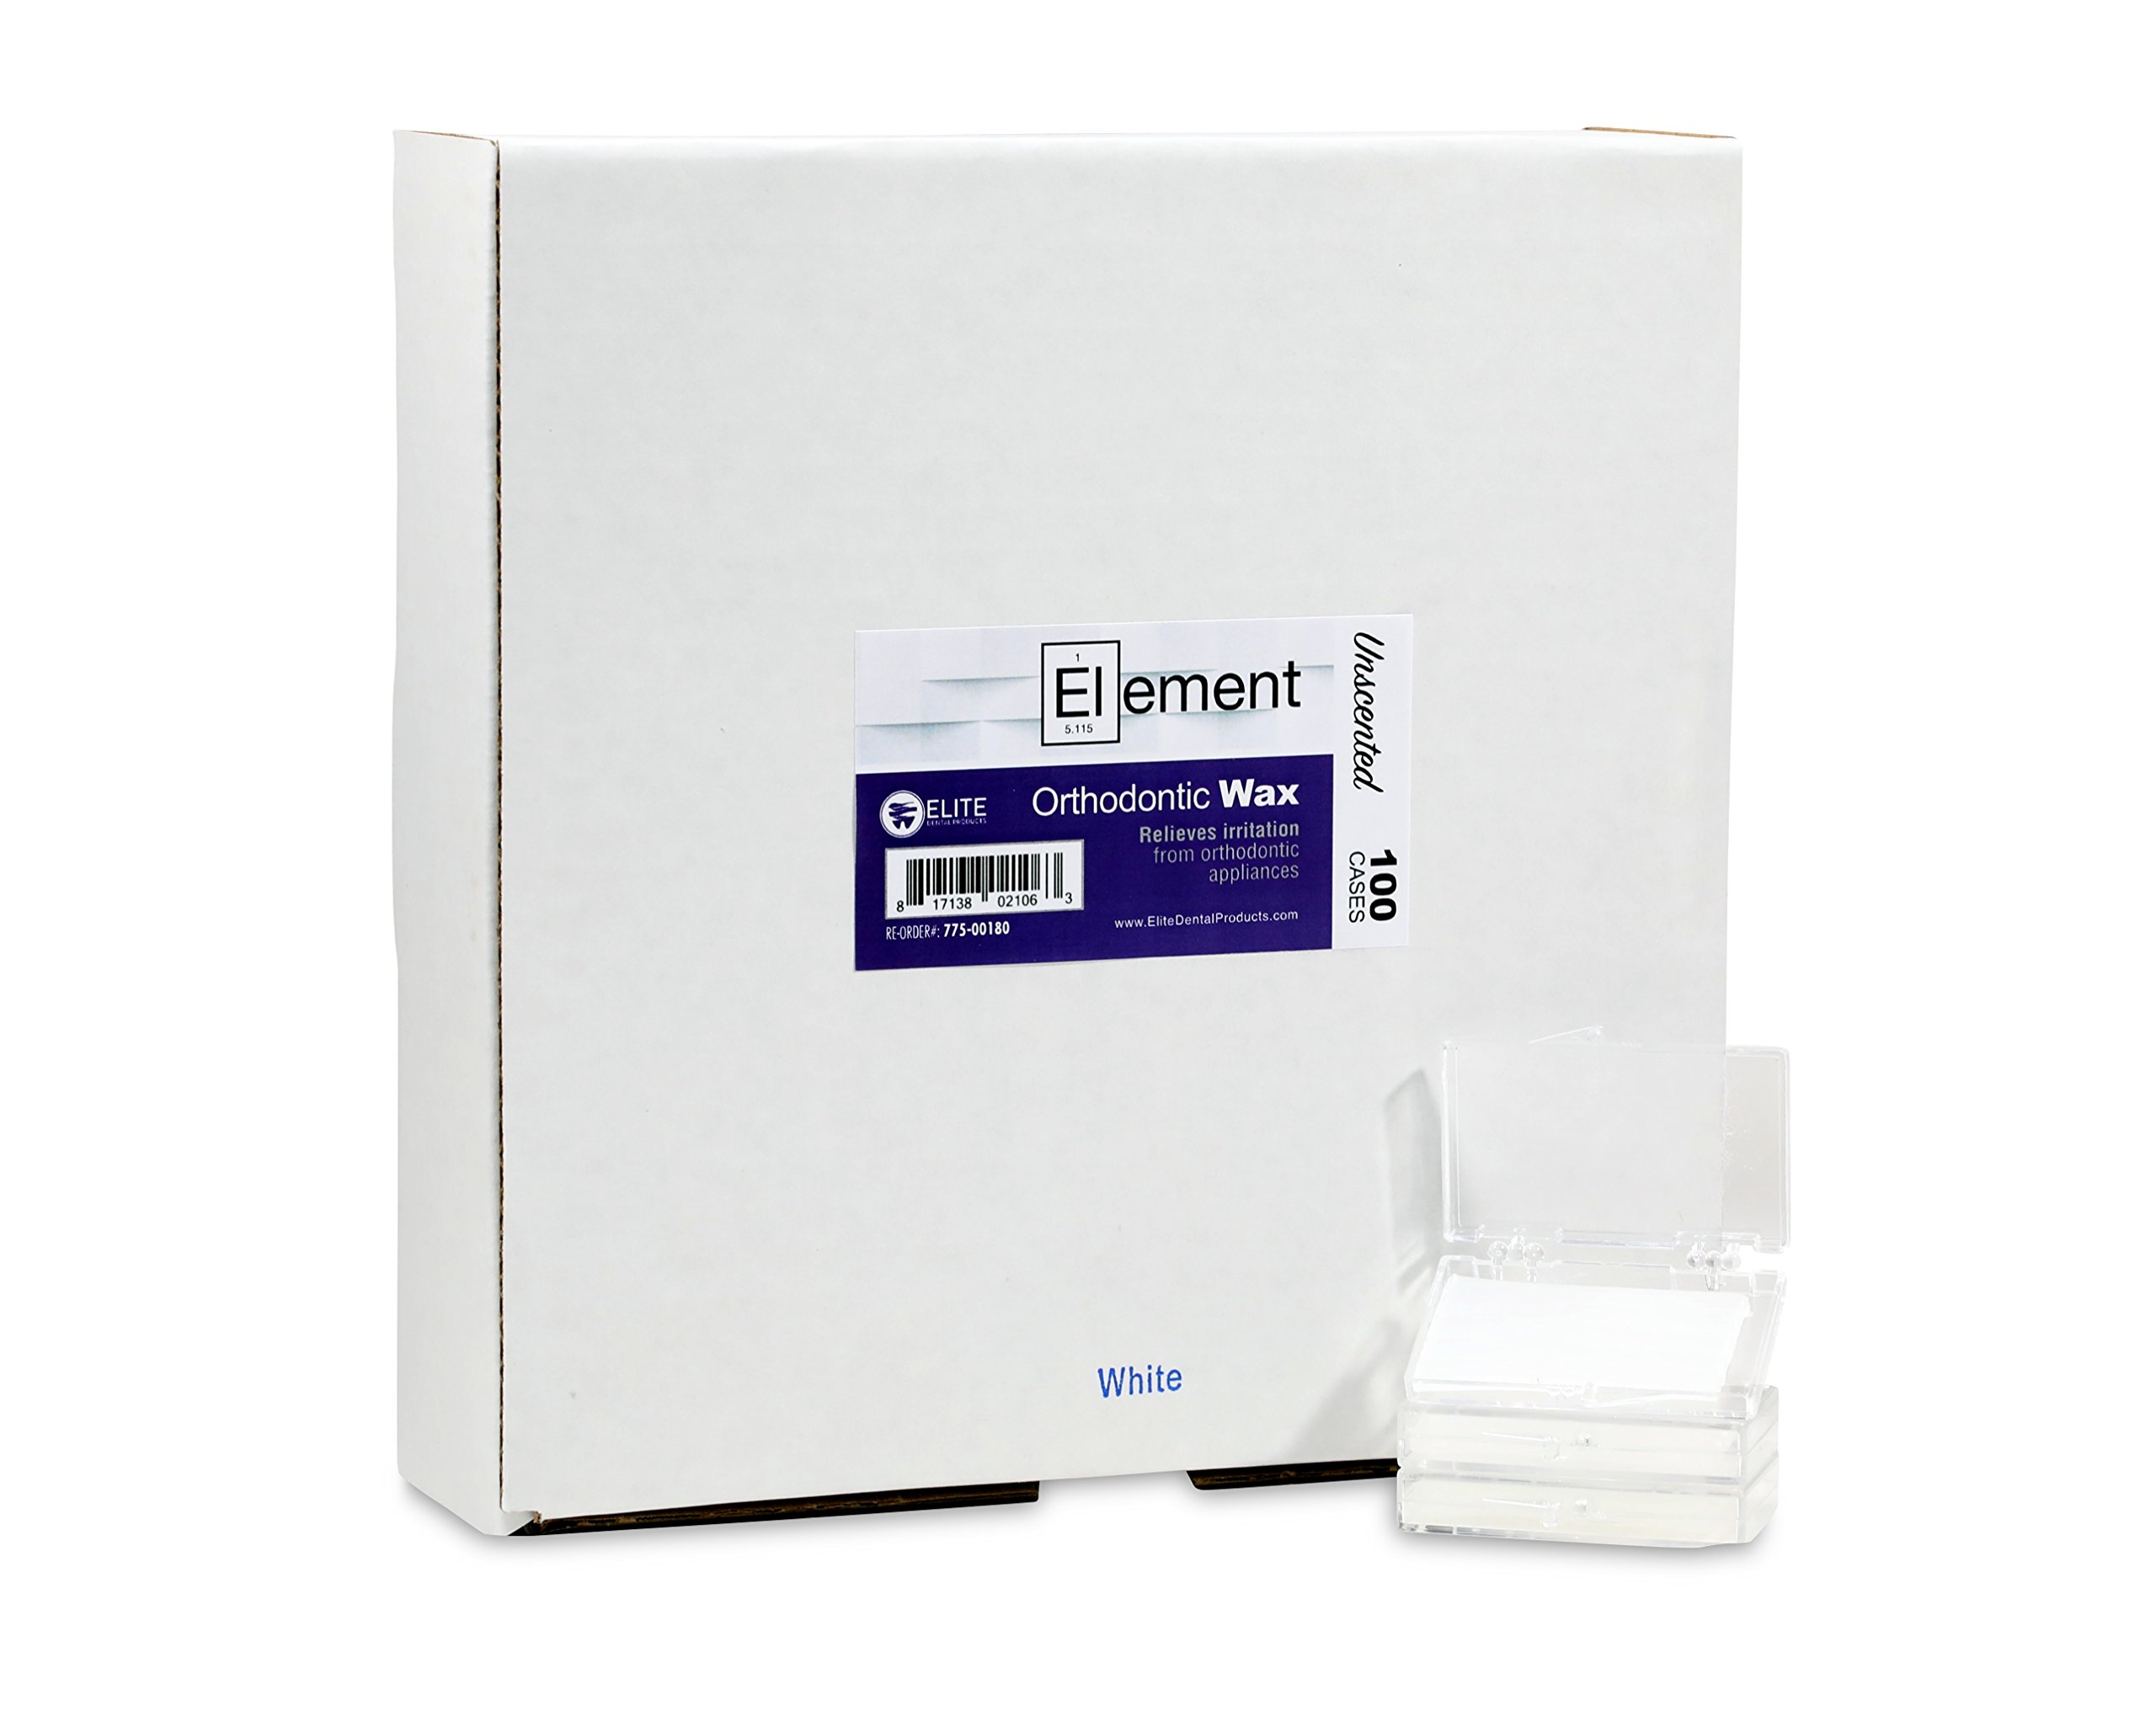 Element Dental Orthodontic Wax 100 Pack Case-10 Colors/scents Available (White/Unscented)